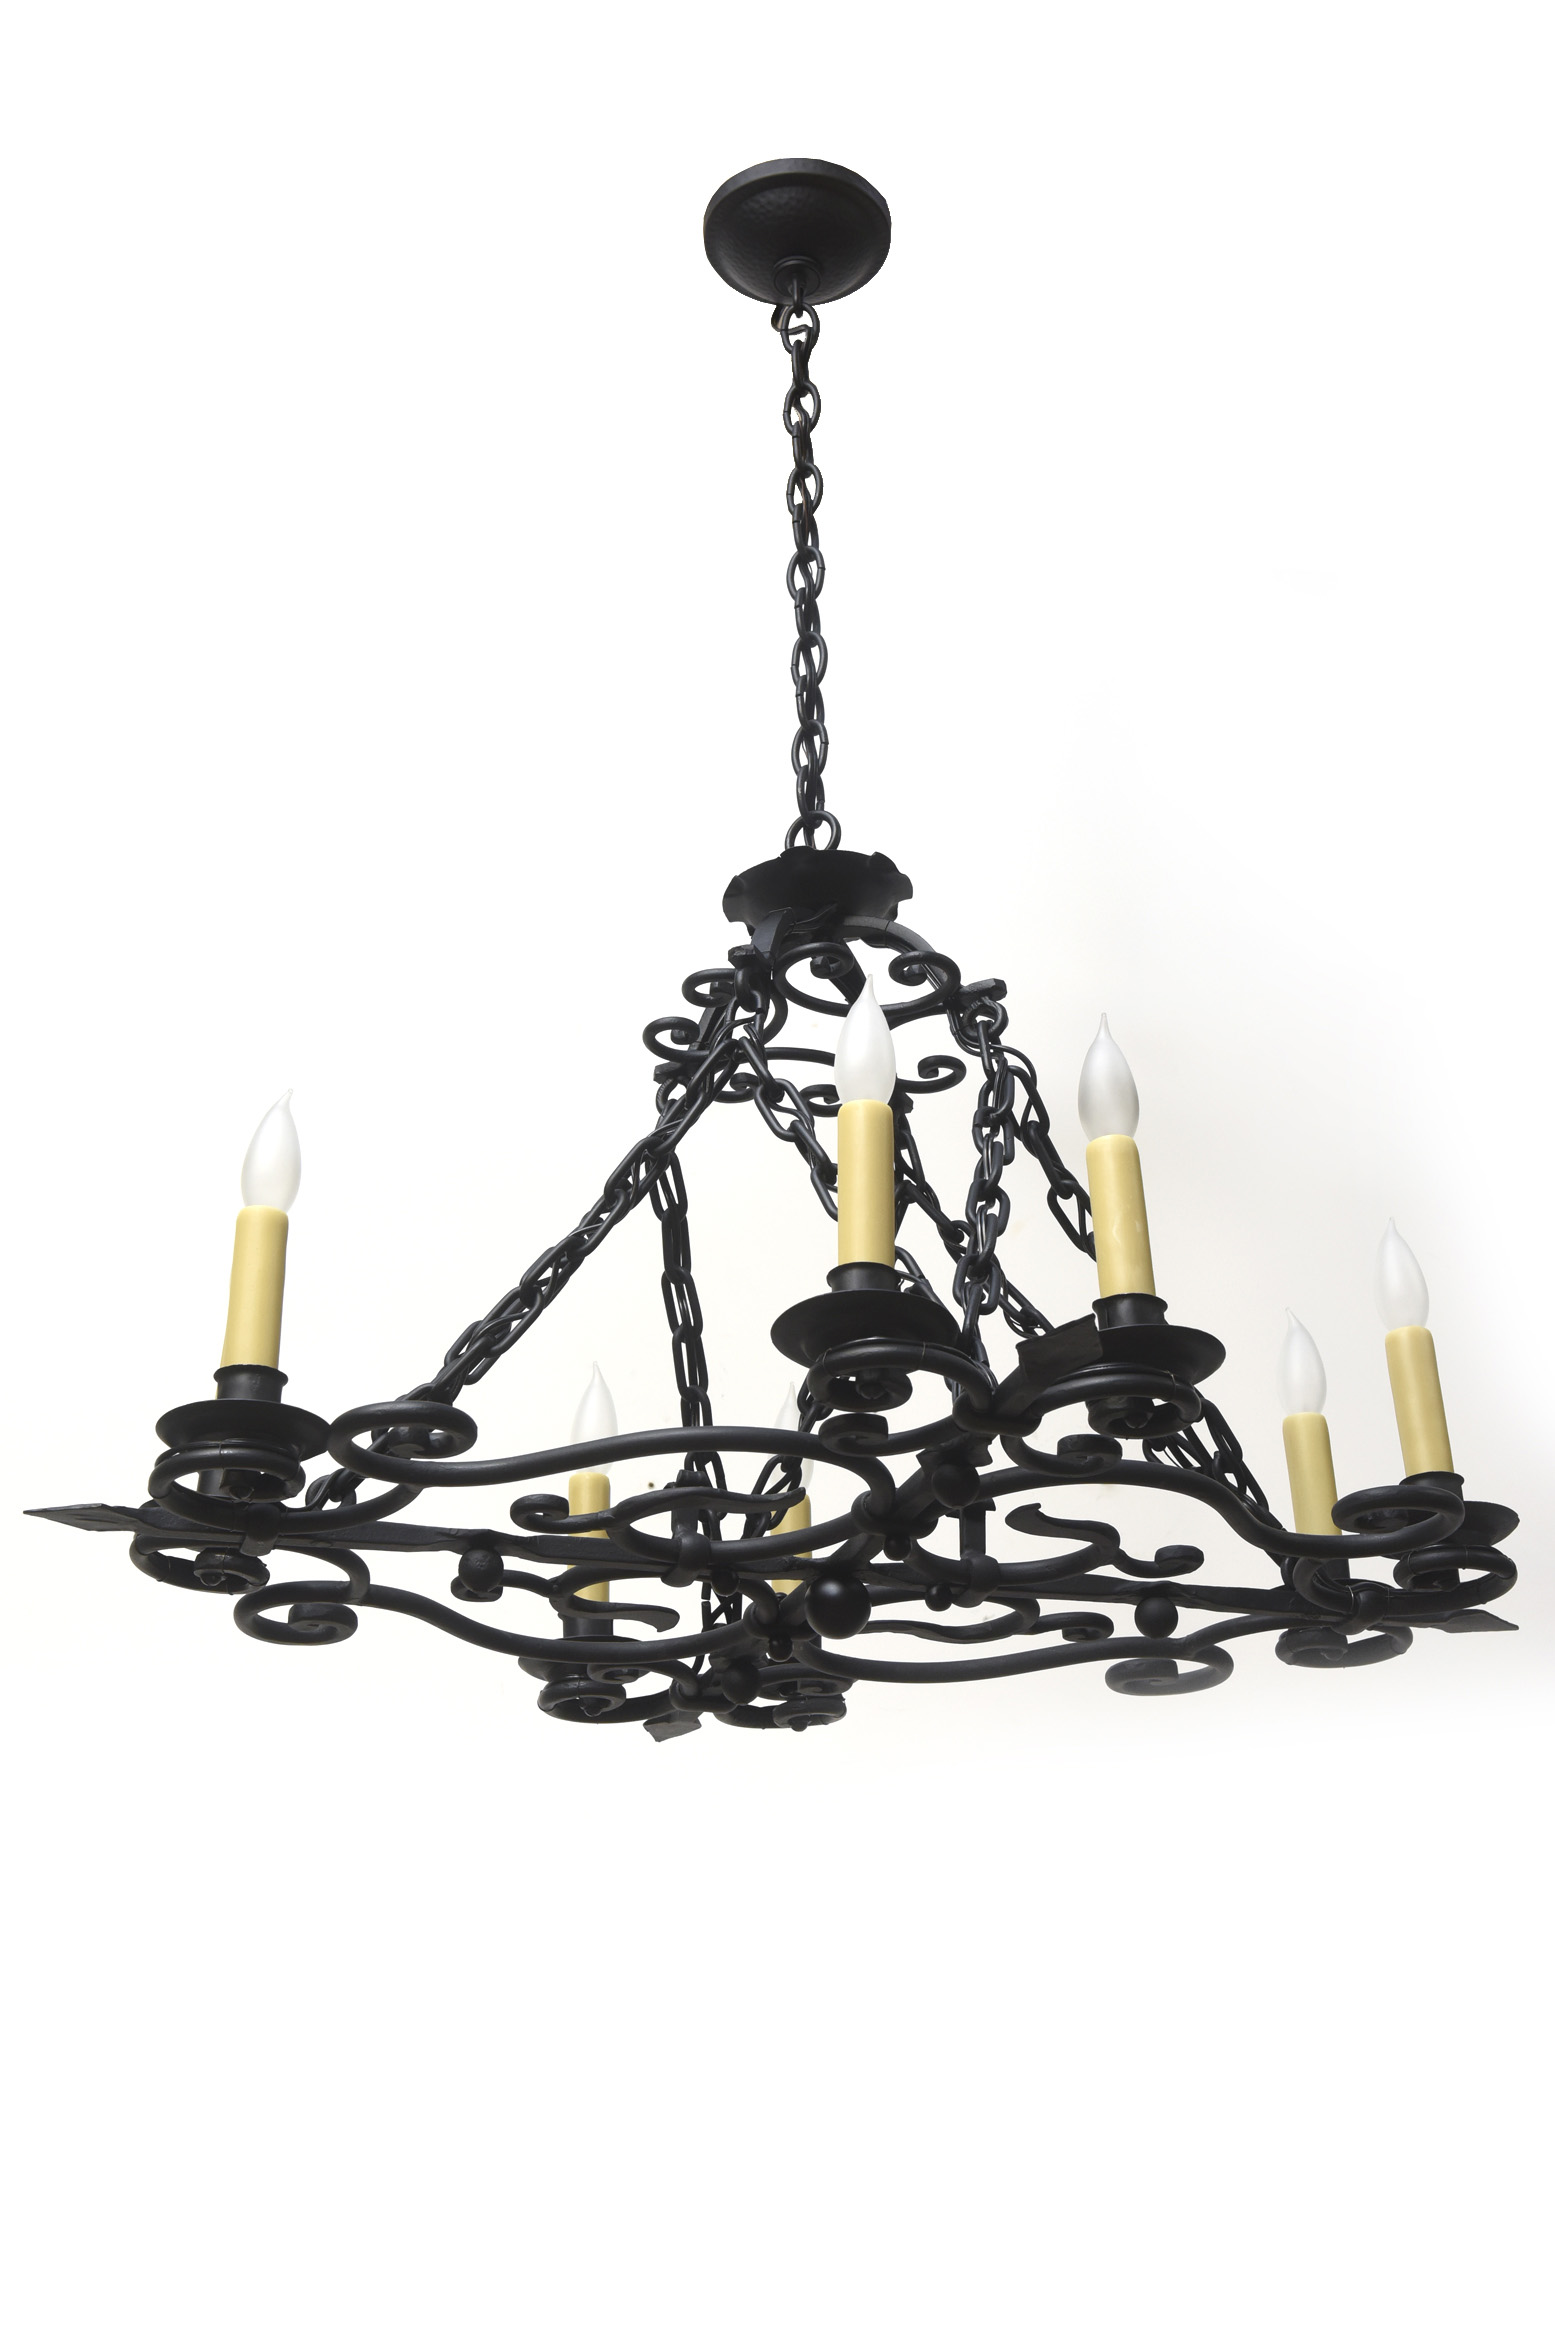 Wrought Iron Oblong Candle Chandelier